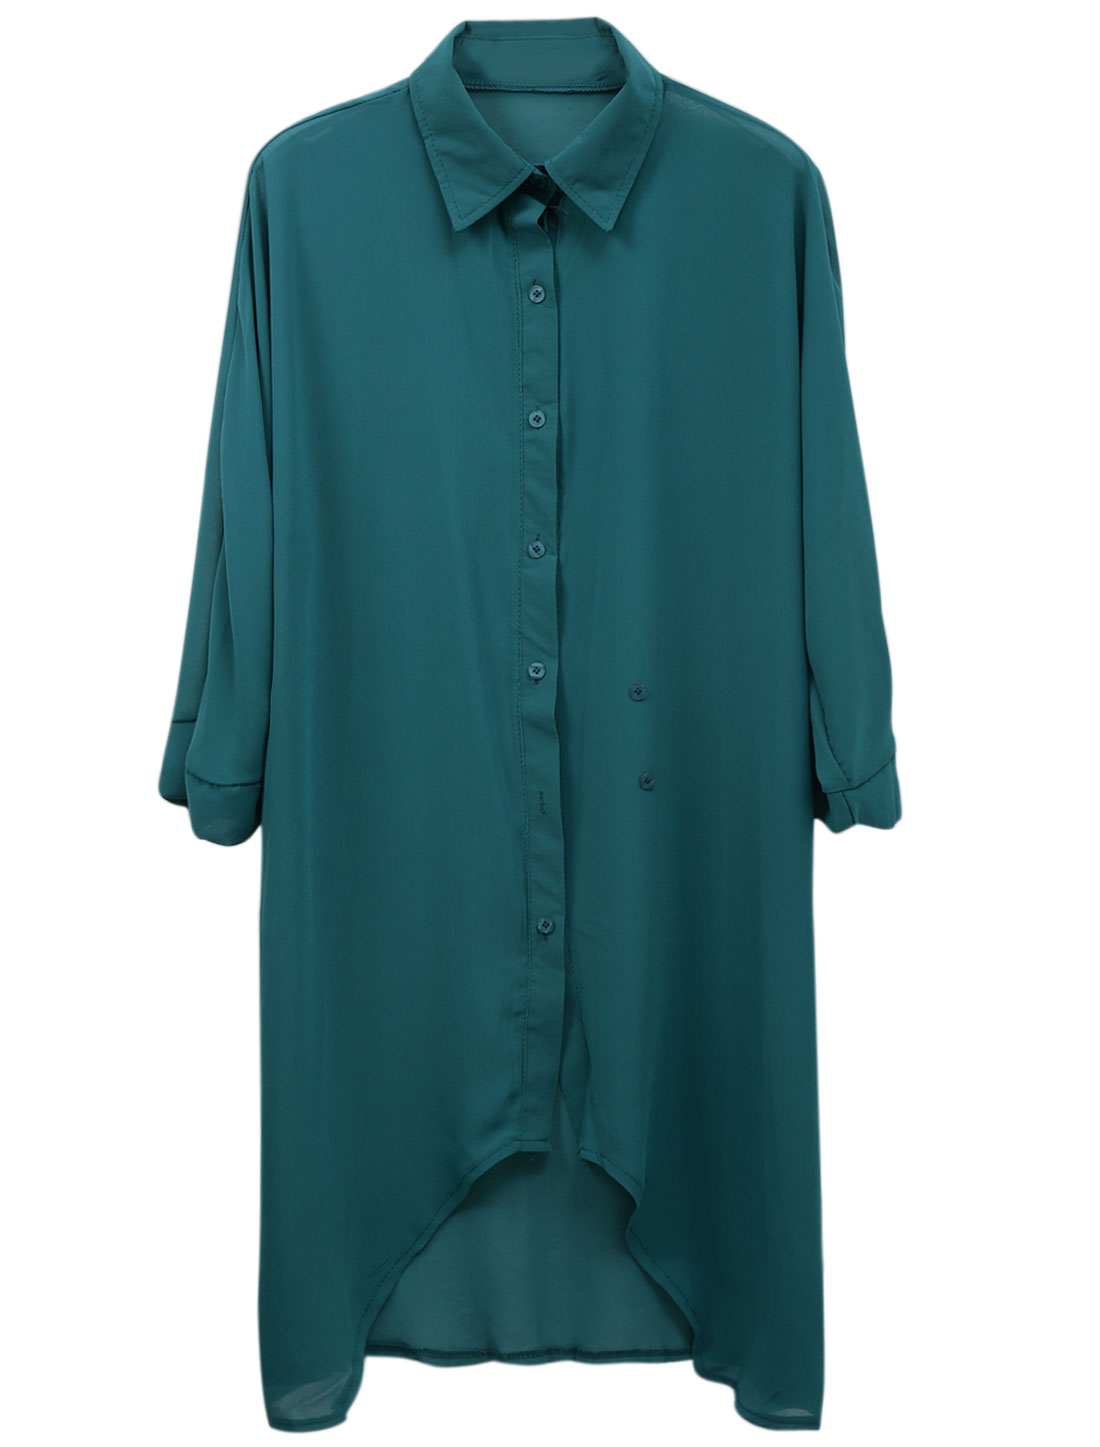 Lady 3/4 Dolman Sleeve Button Up Irregular Hem Long Shirt Peacock Blue M